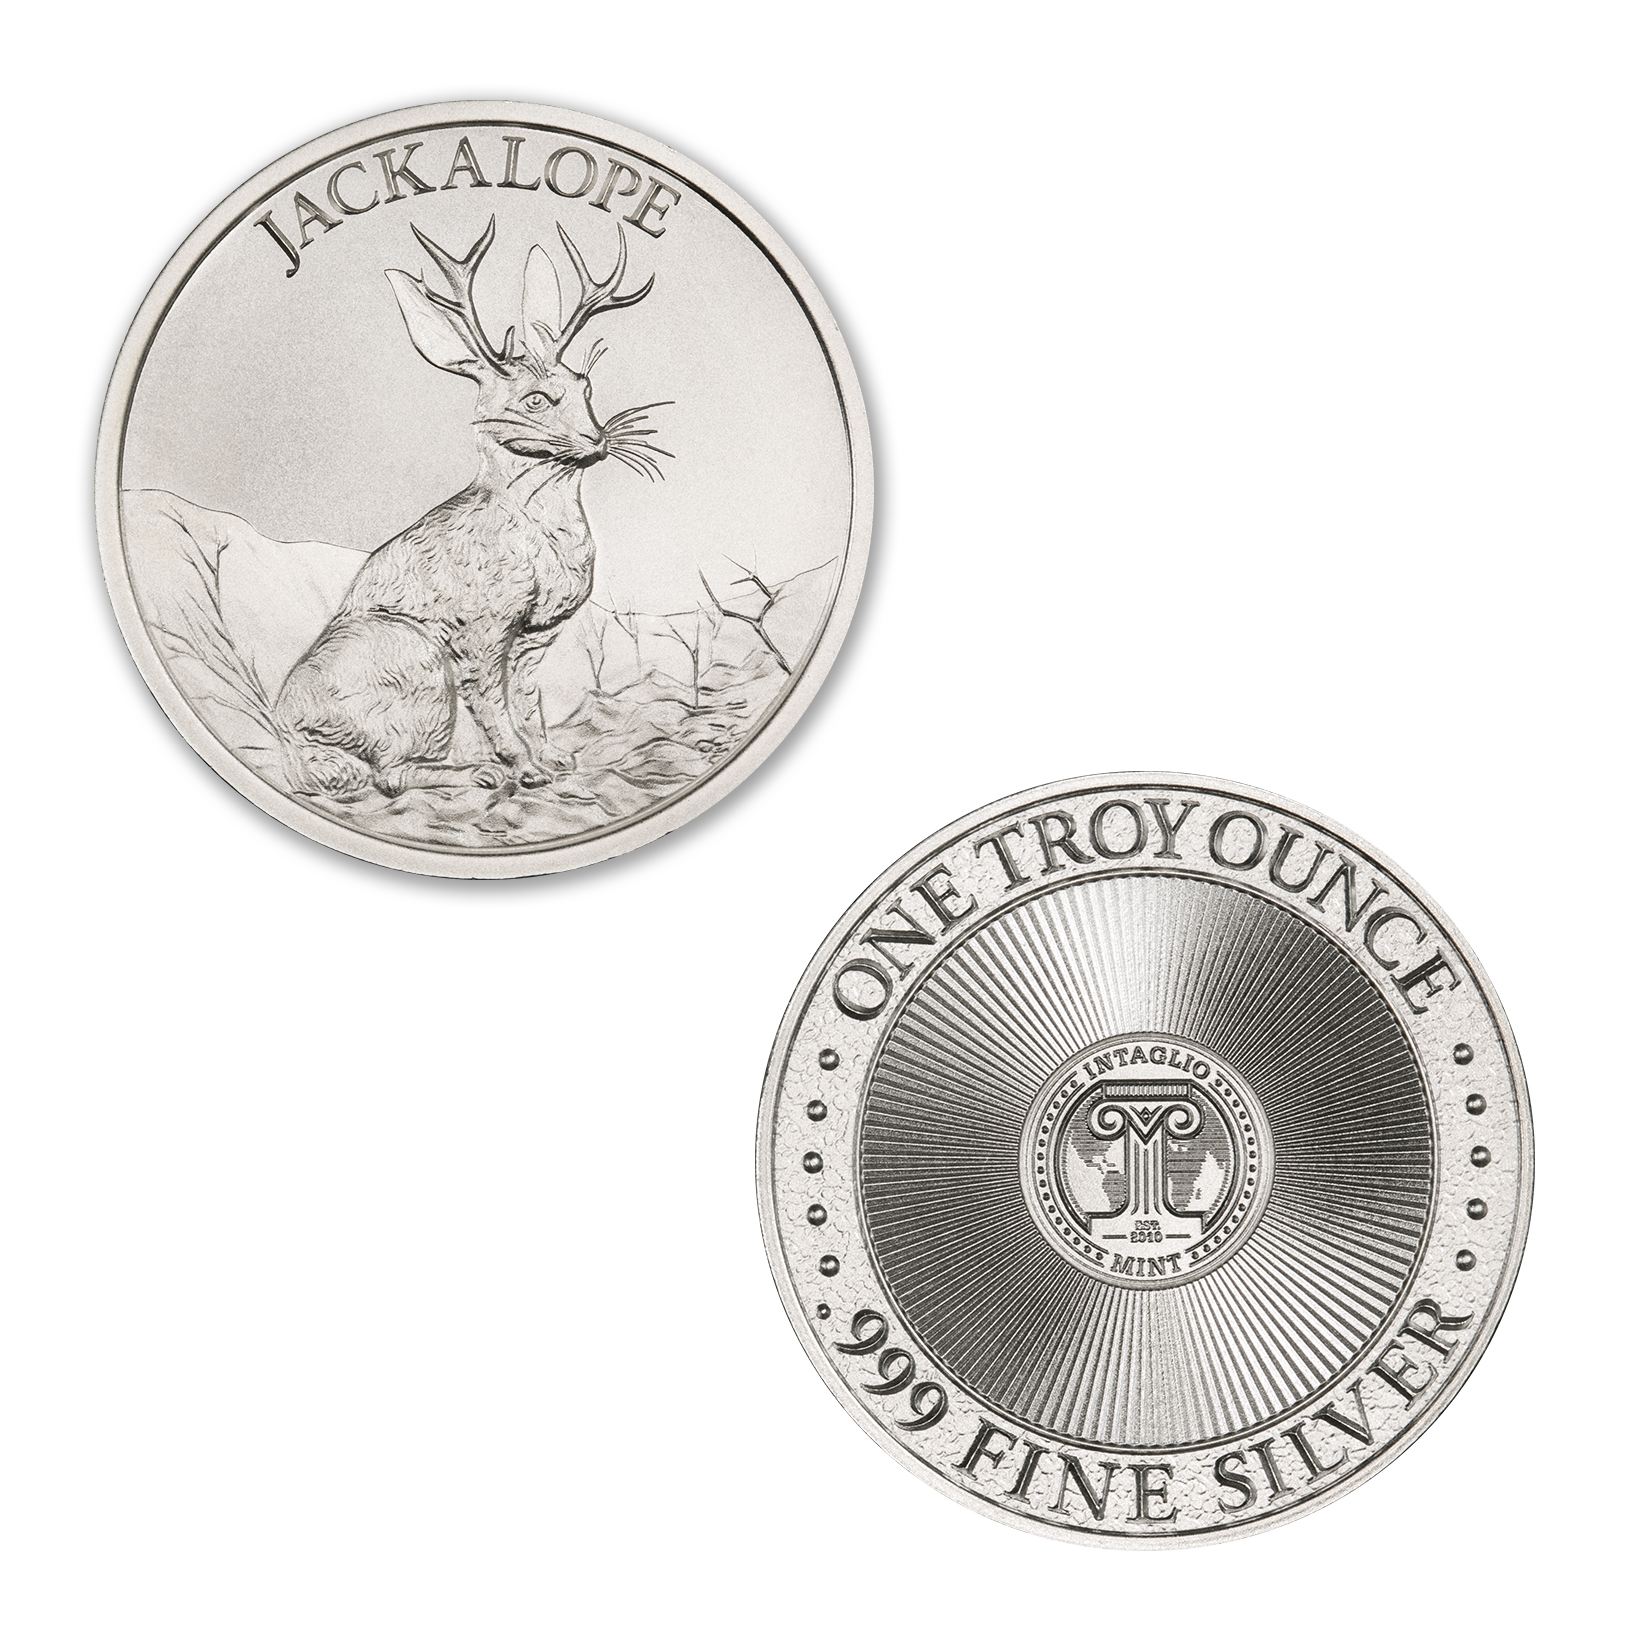 JACKALOPE – 1 TROY OUNCE – 39MM